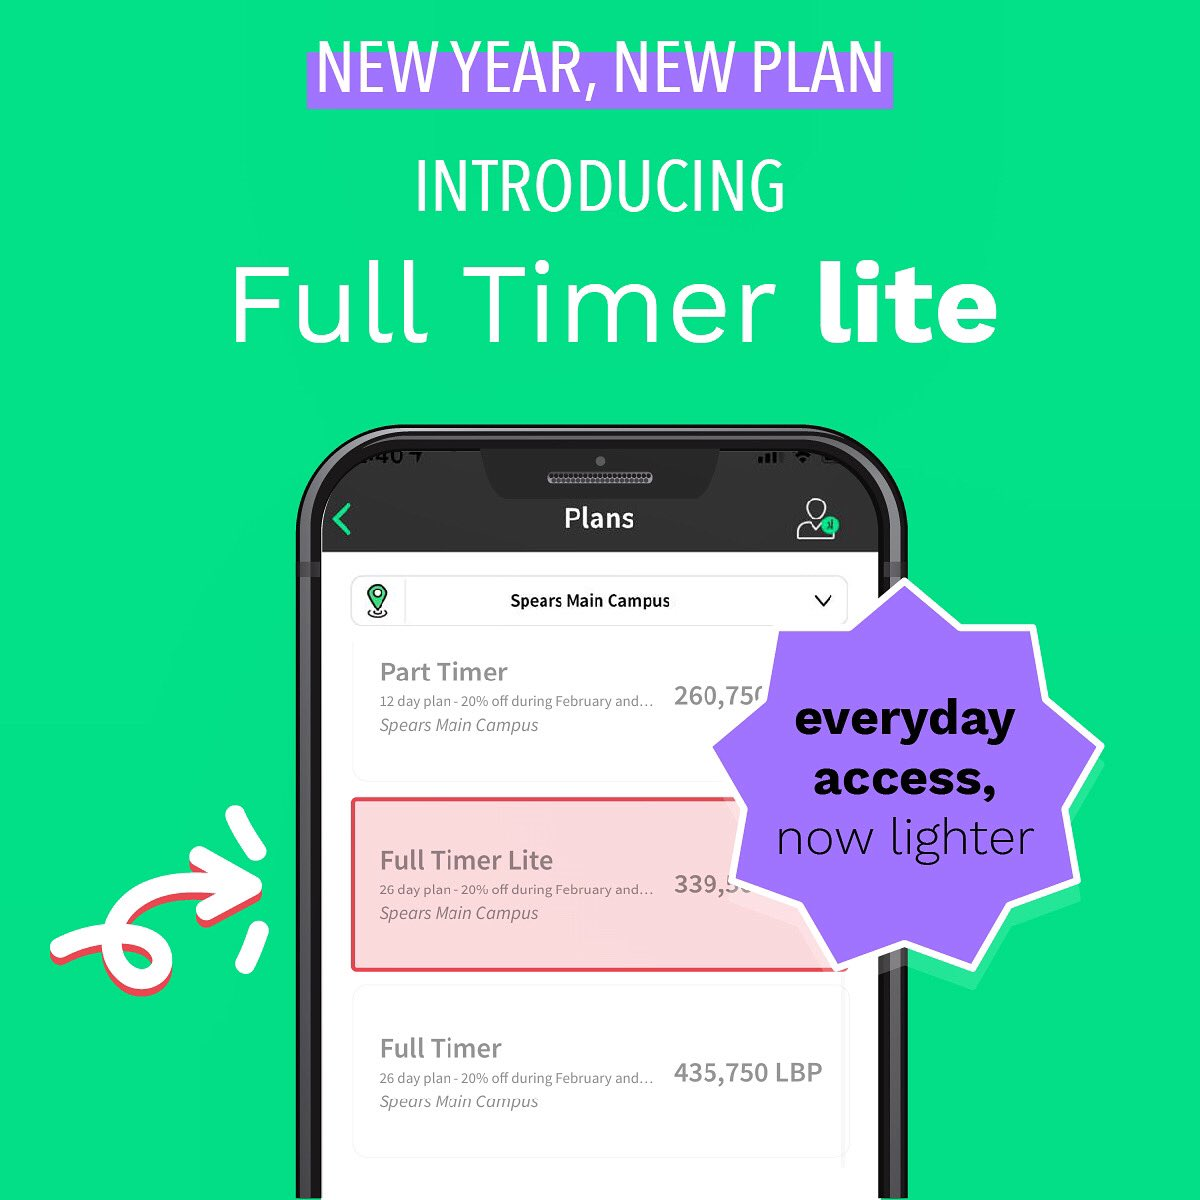 Your full timer membership has just gone lighter! Check out our newest and more affordable plan now on our website and app. You can now pay credit or cash in Lebanese Liras! Learn more: https://t.co/5HxnRcku94 https://t.co/XHDVJnpghz